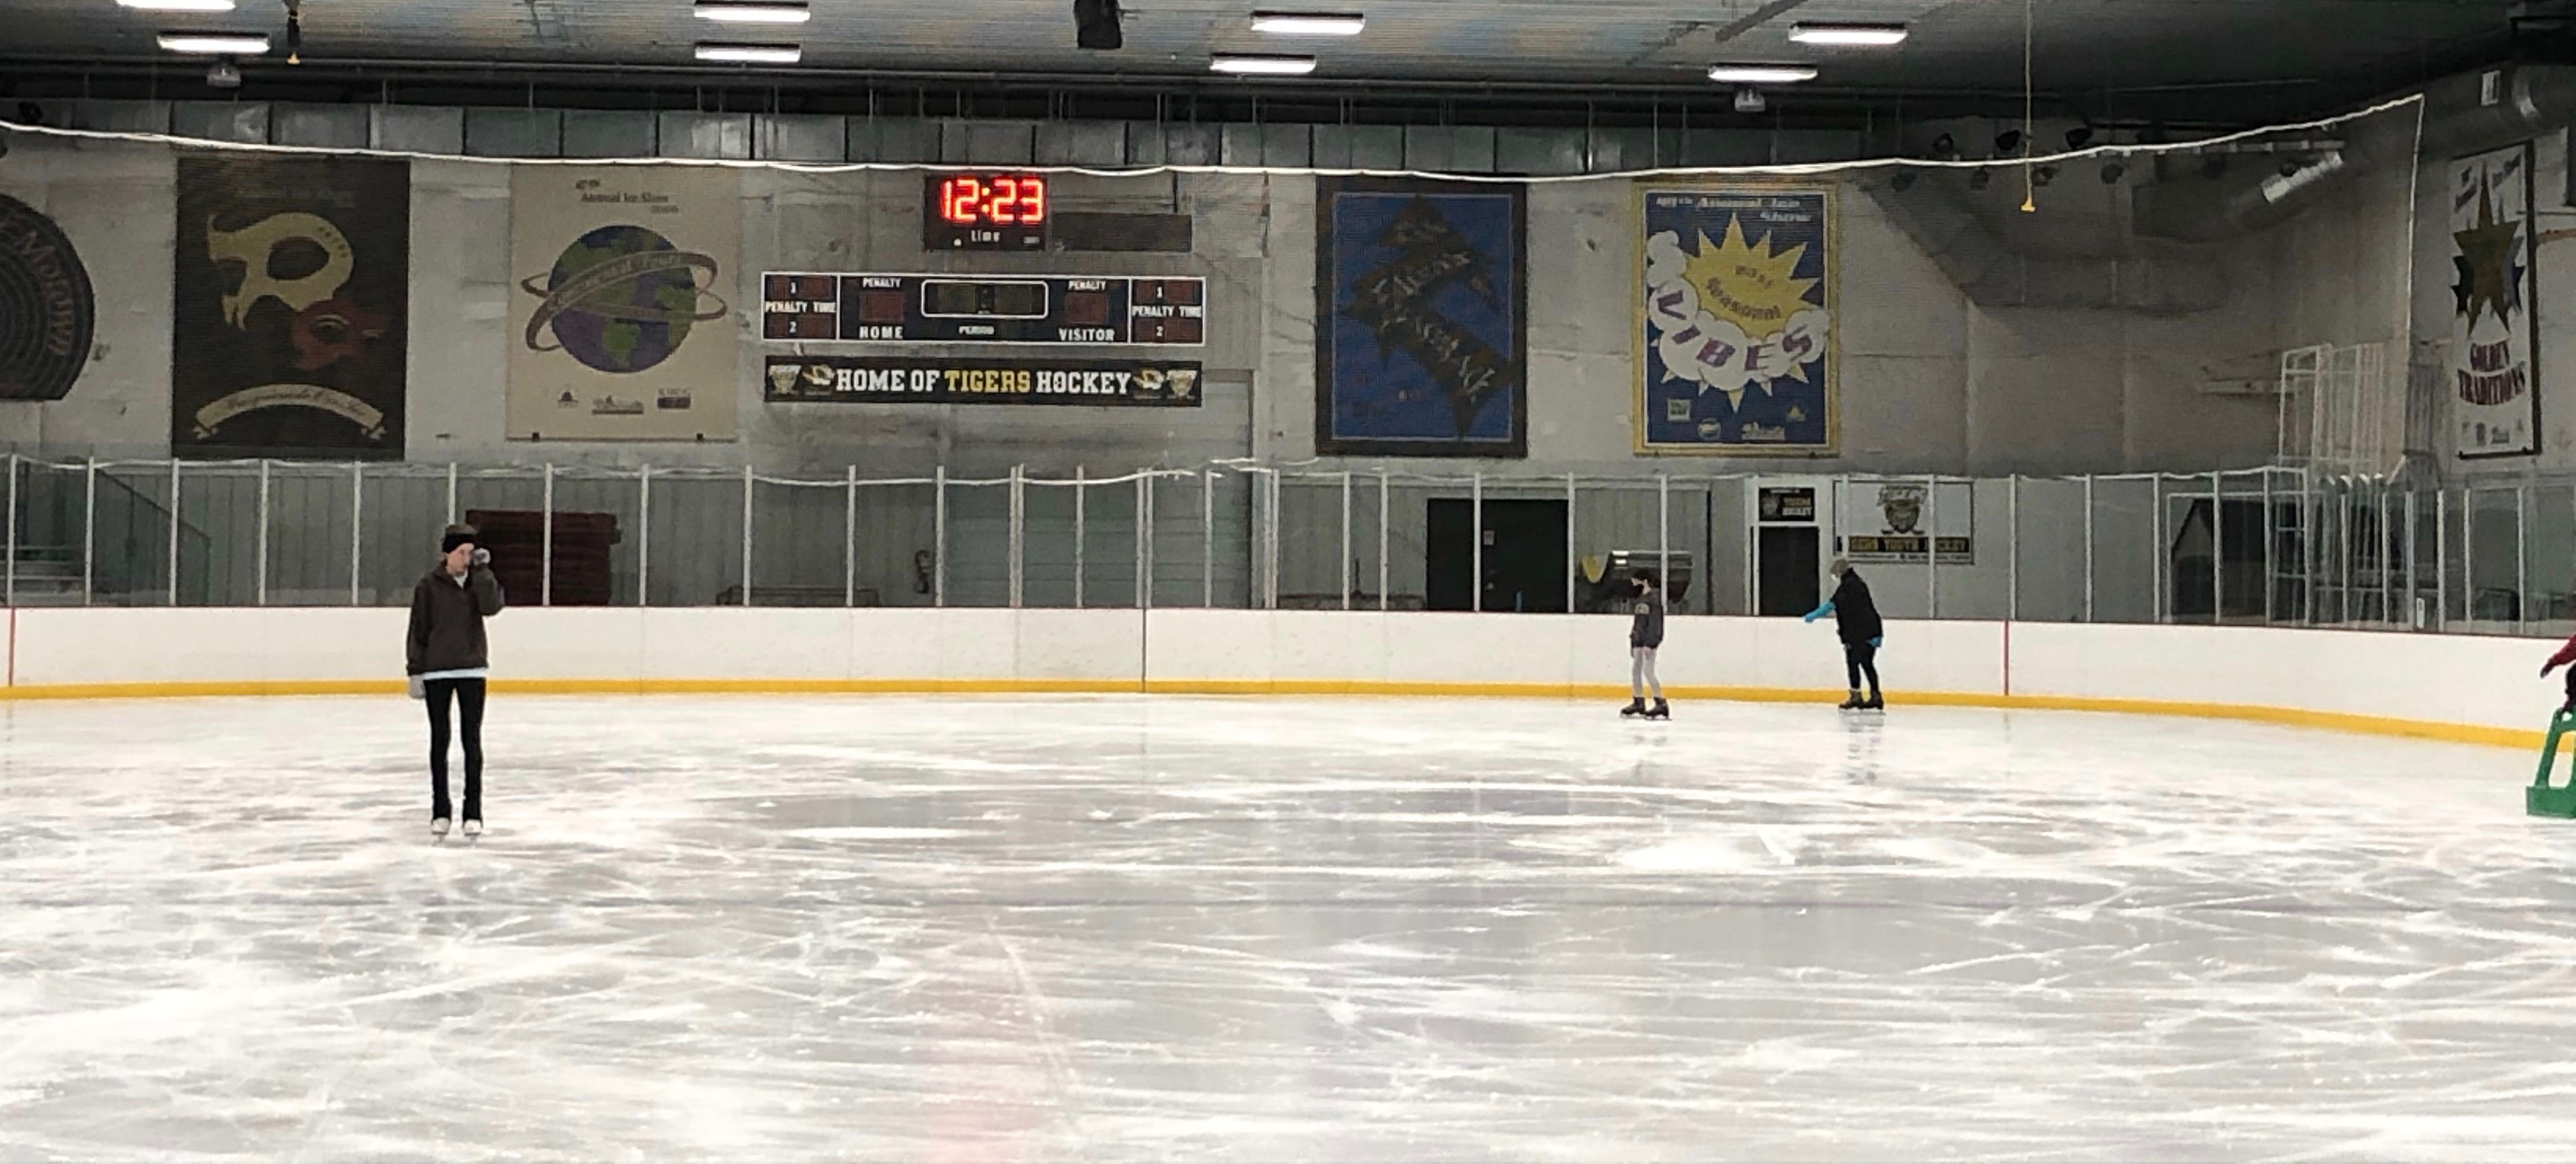 Welcome to the Rink